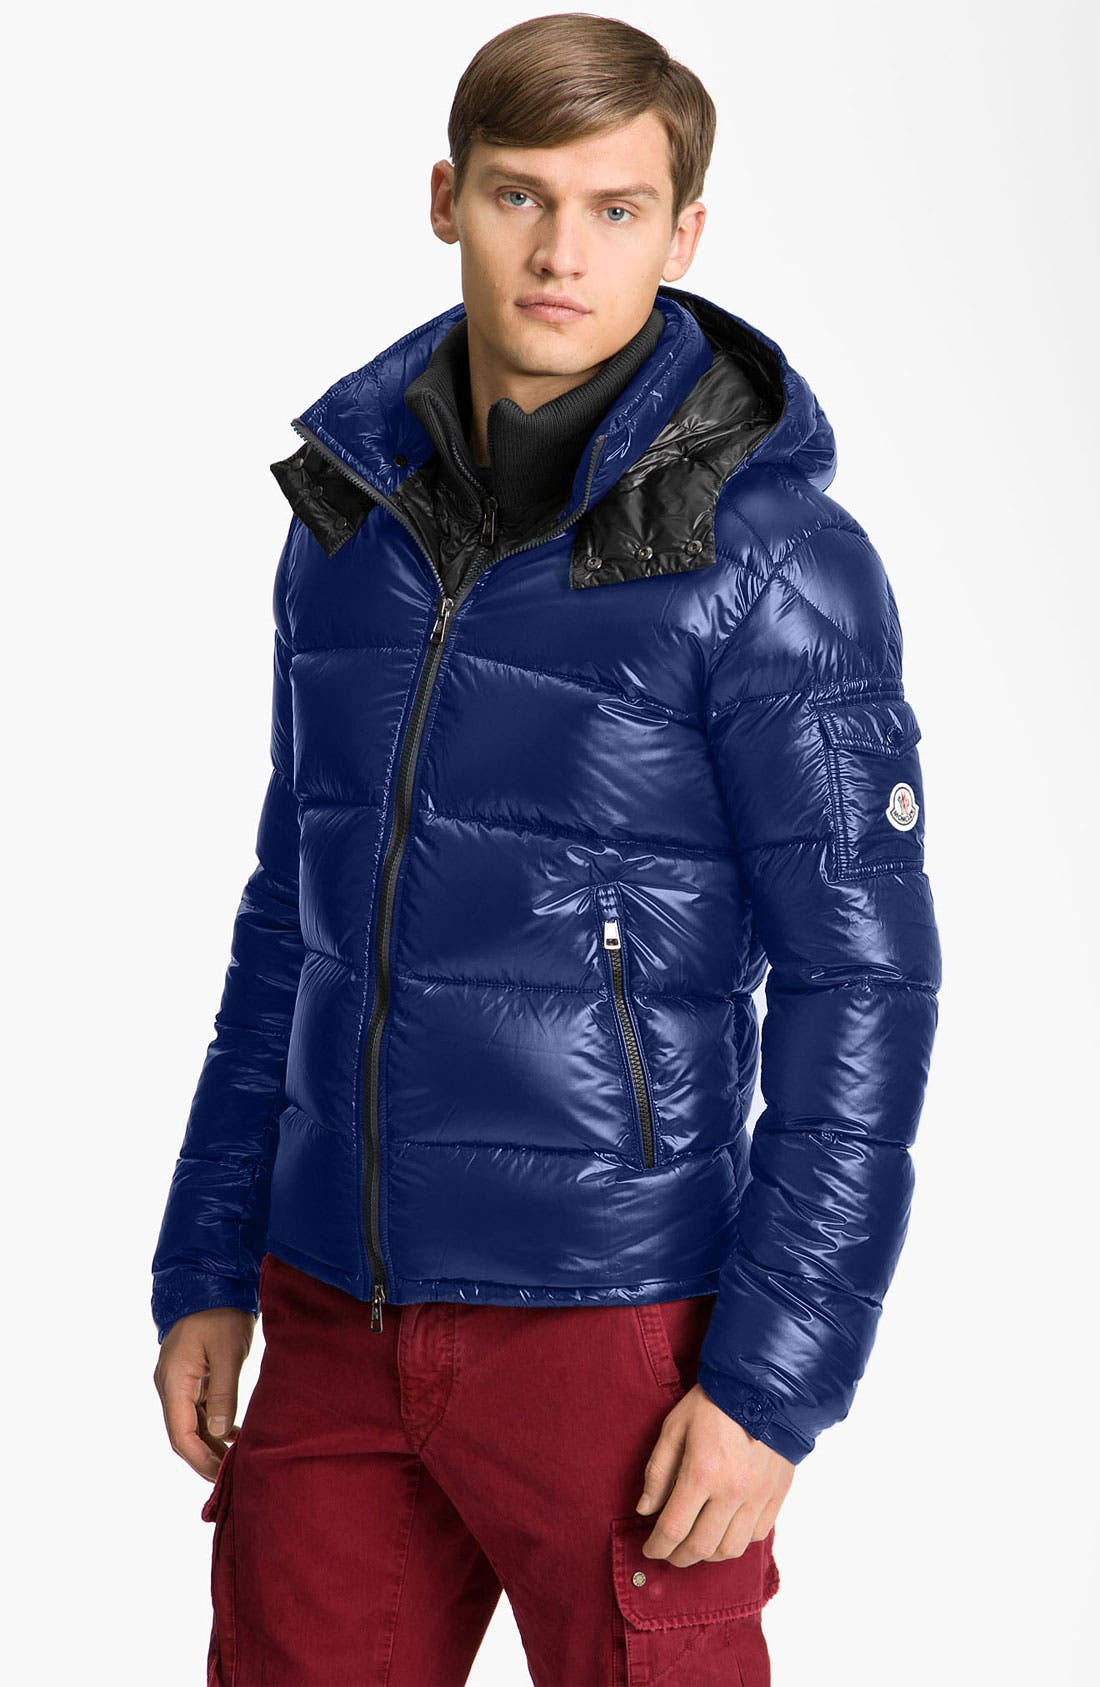 Alternate Image 1 Selected - Moncler 'Zin' Quilted Bomber